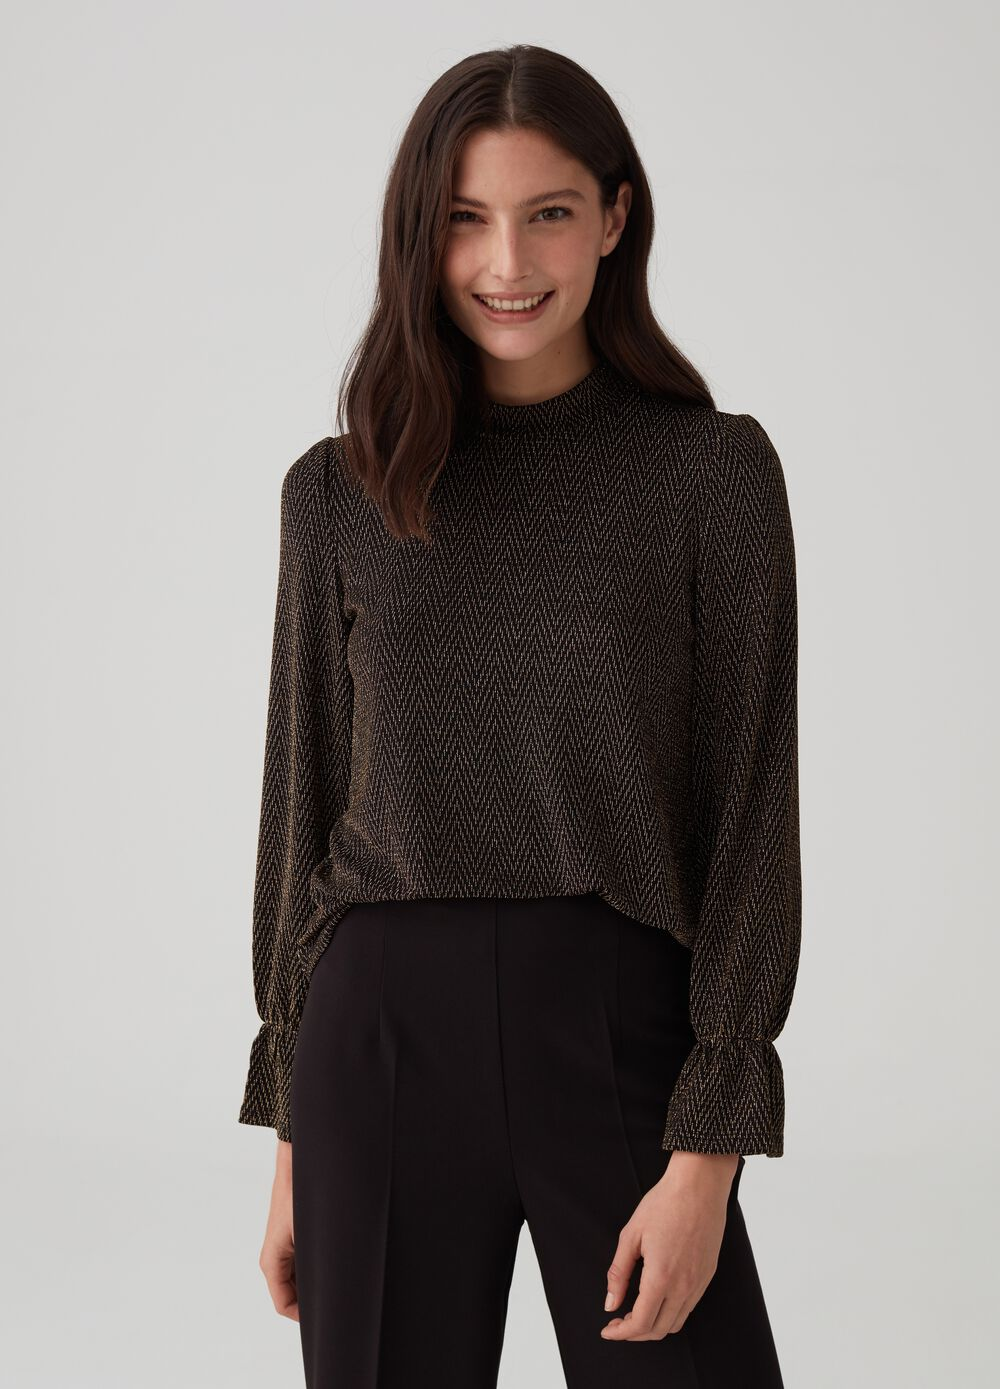 Patterned T-shirt with long sleeves and lurex